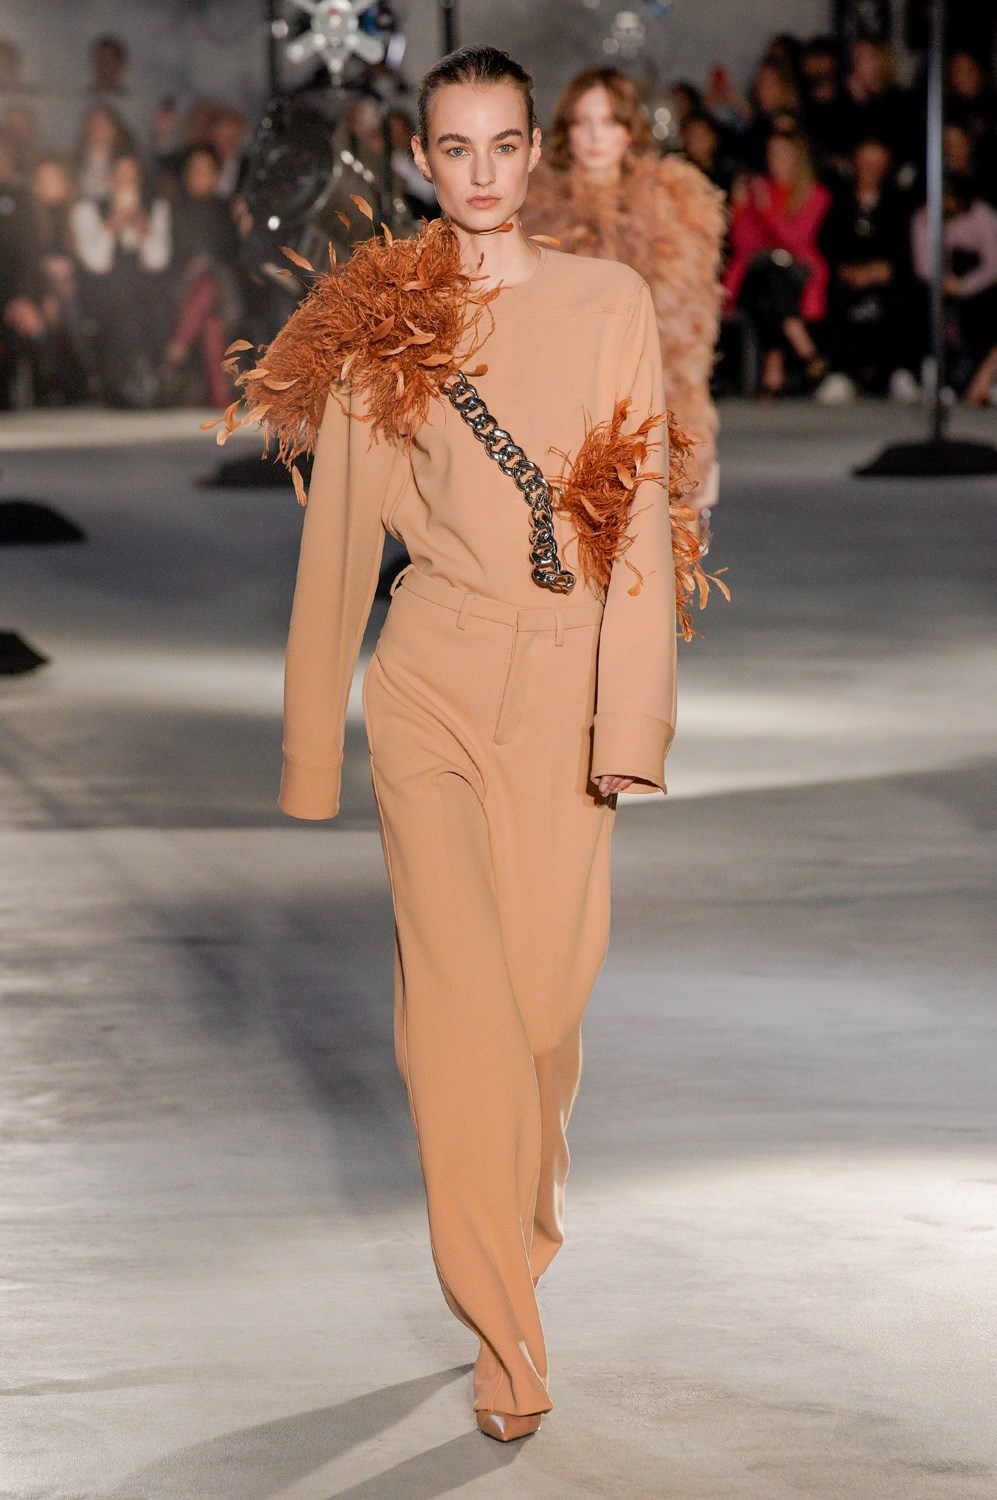 Milan Top 10 Fall 2020 Women's Fashion Shows Photos